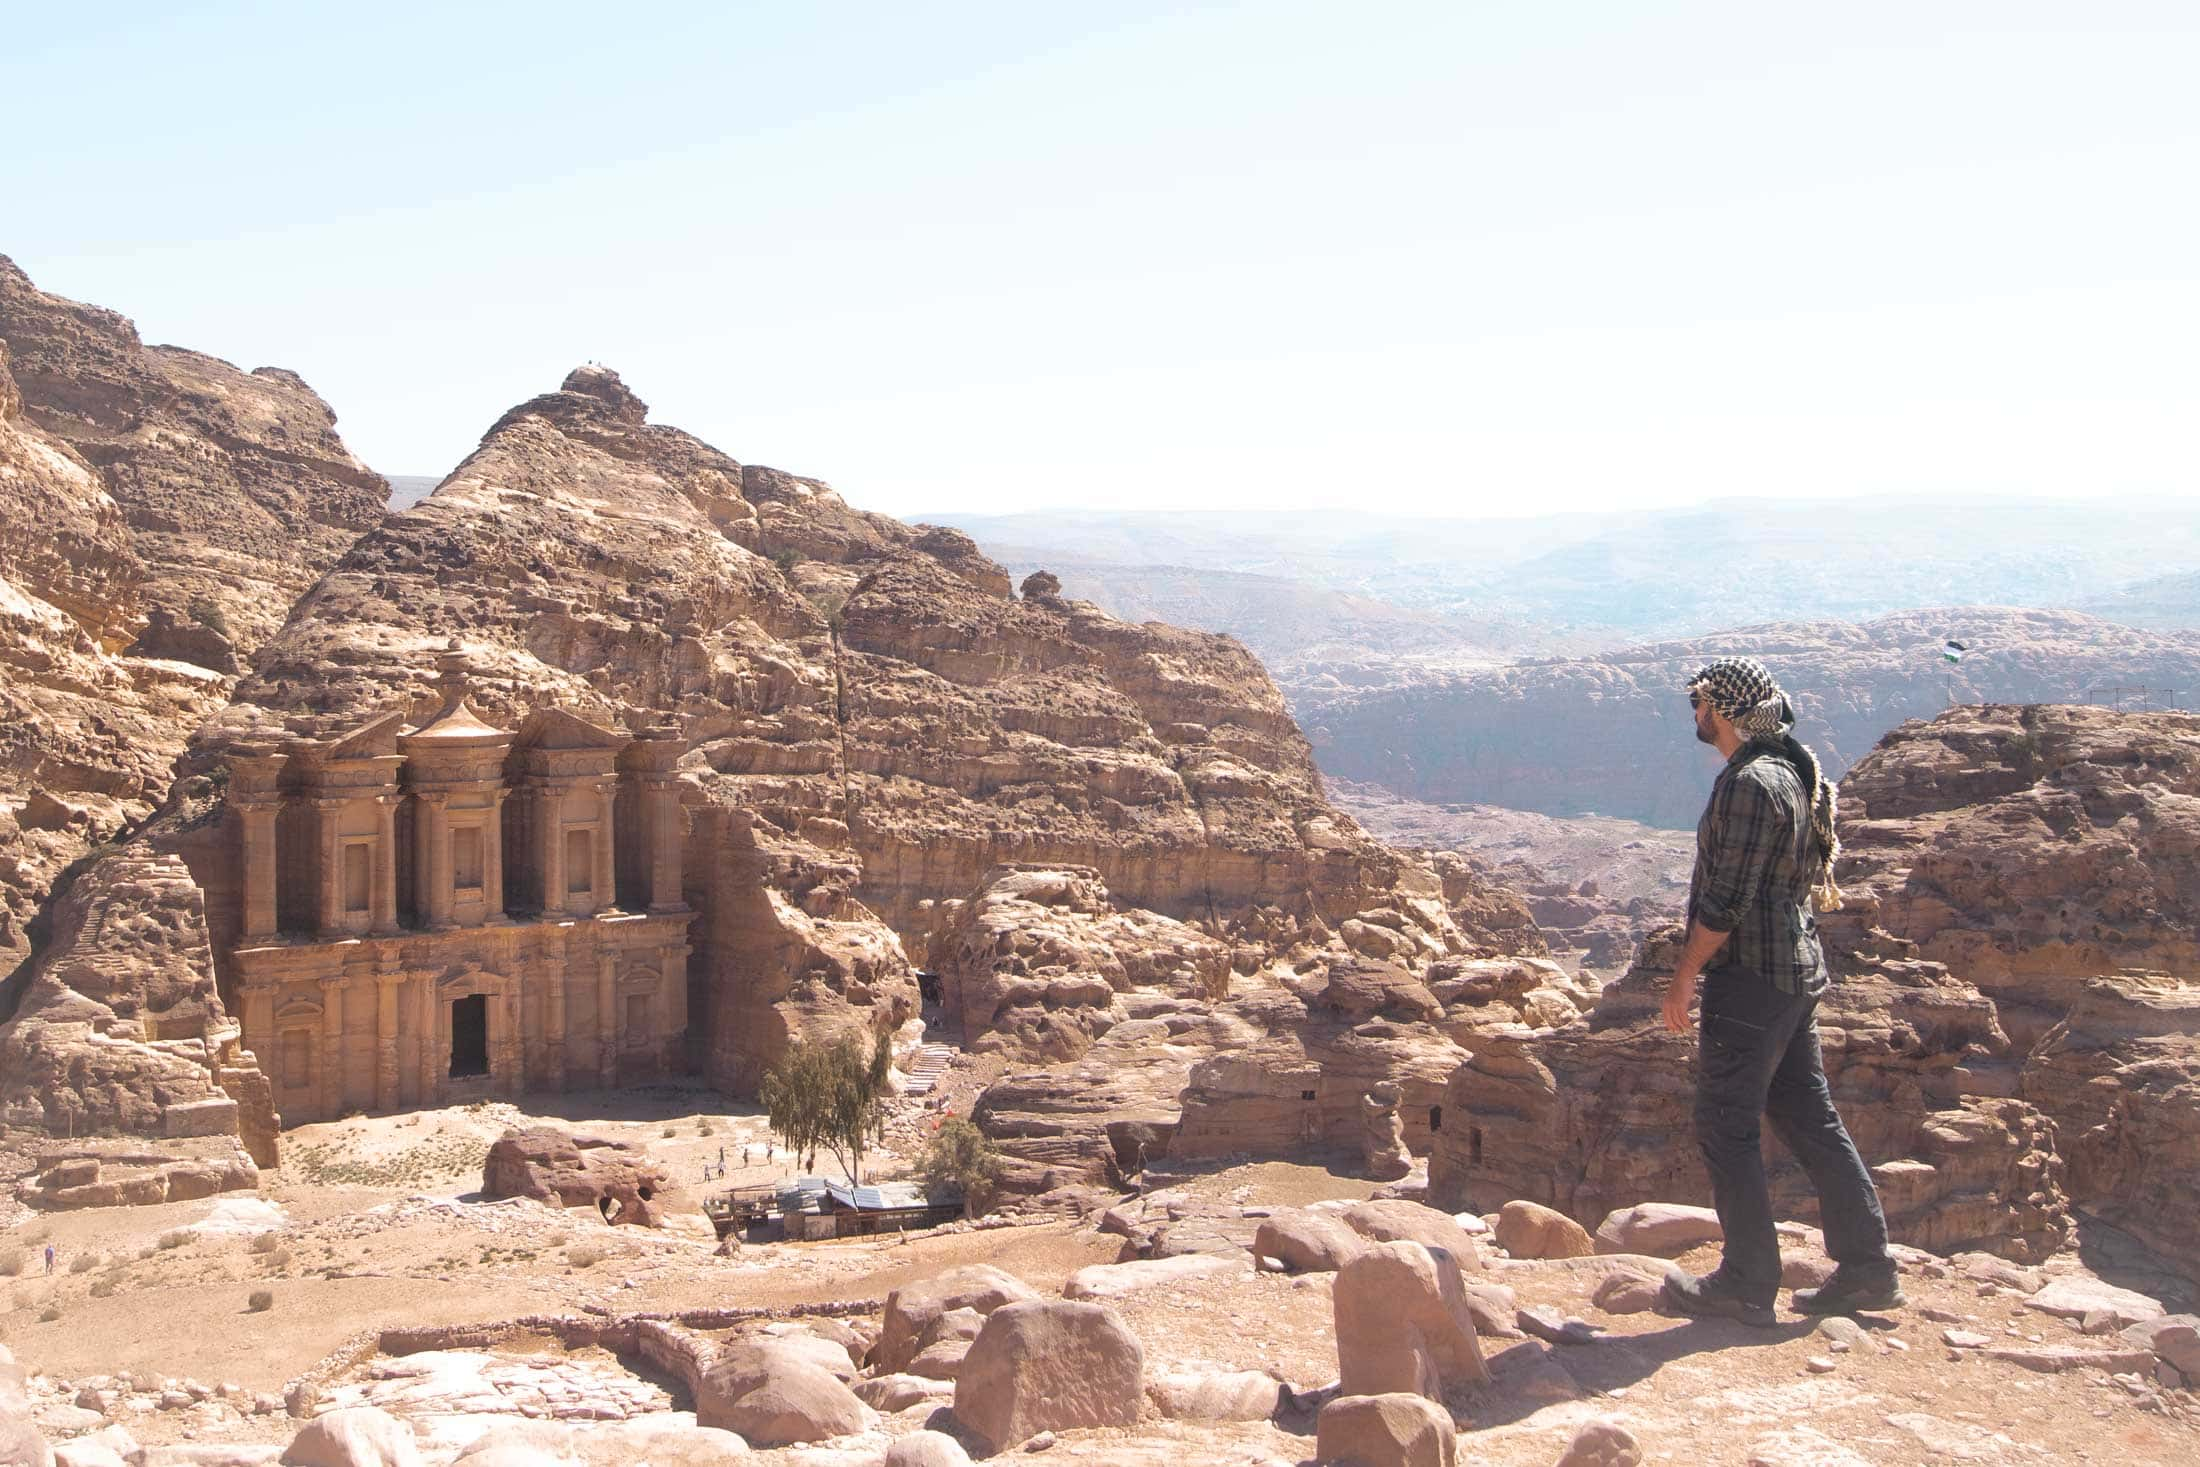 man standing in a desert with the monastery of petra in the distance